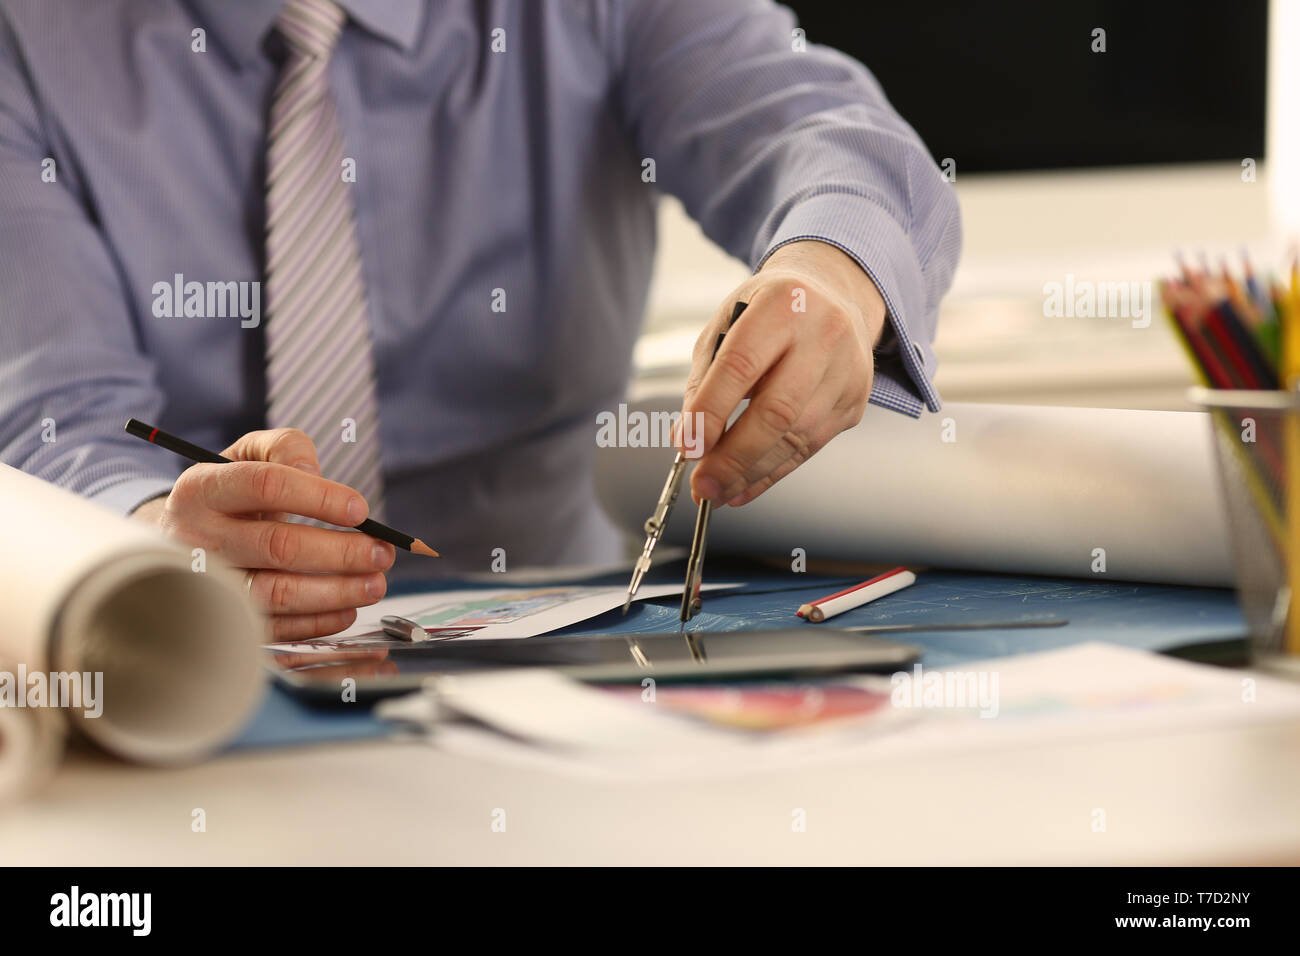 Professional Architect Drafting Building Project - Stock Image